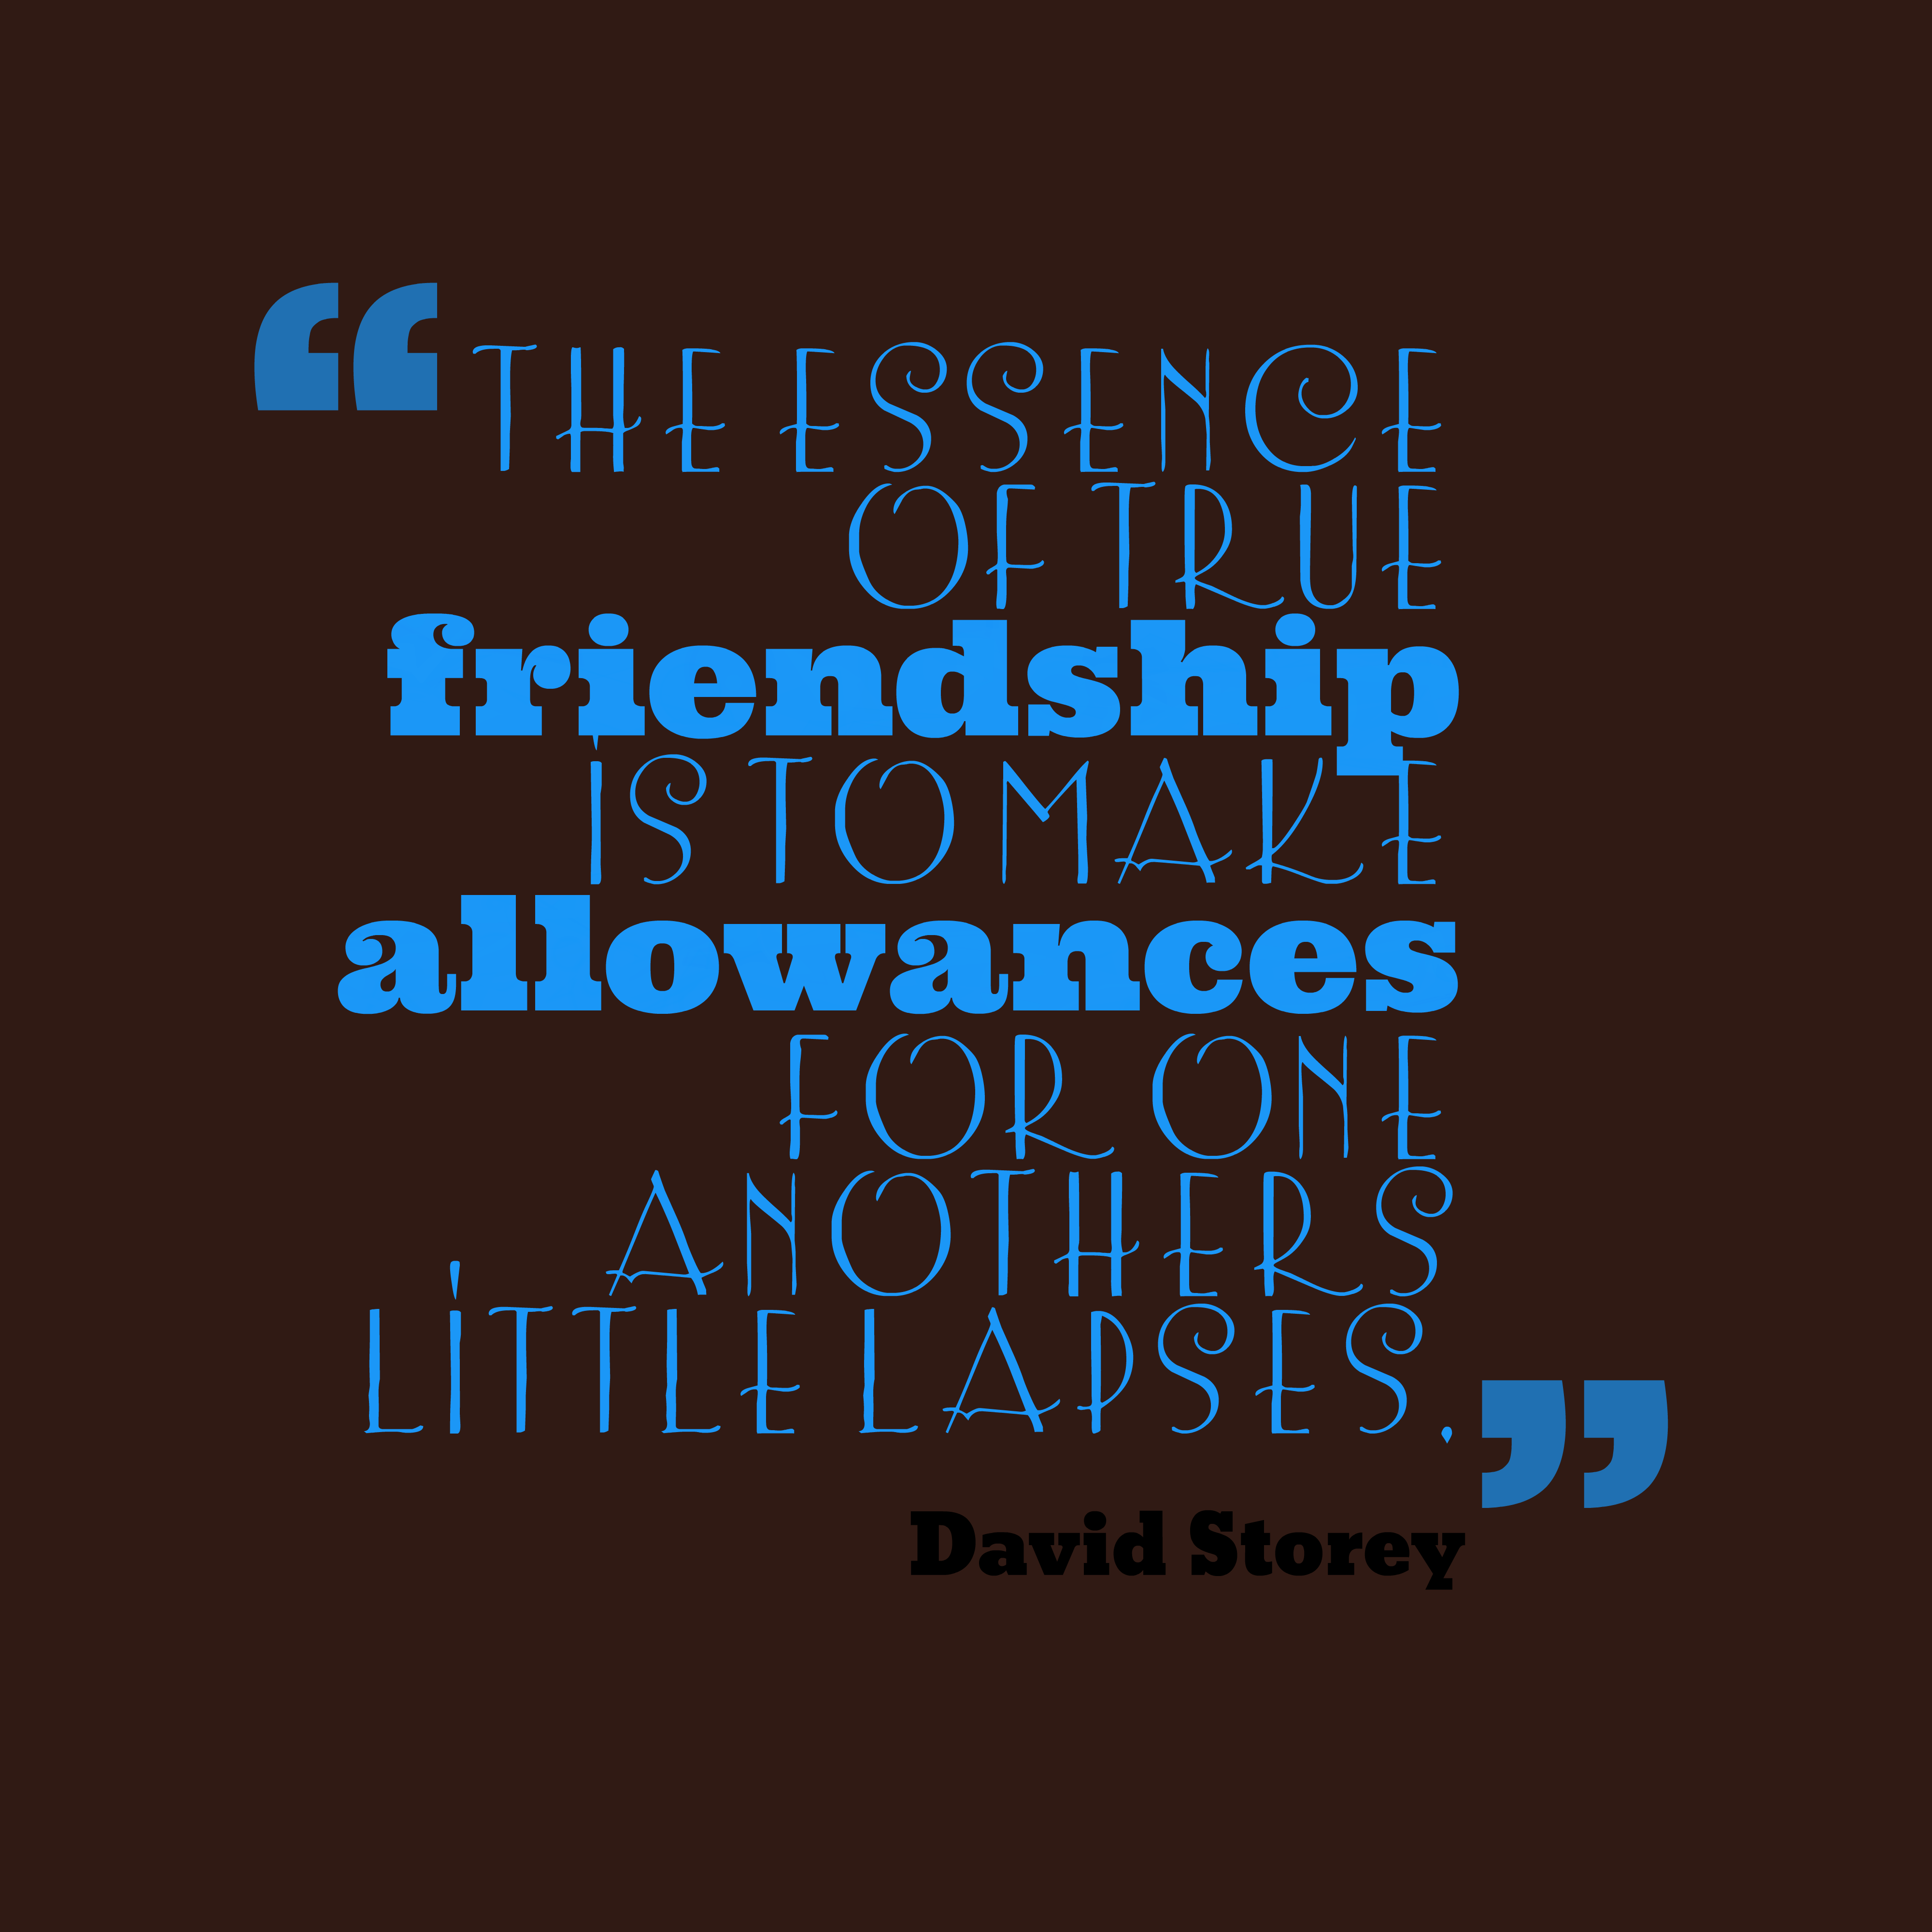 Quotes For Real Friendship: 116 Best Friendship Quotes Images